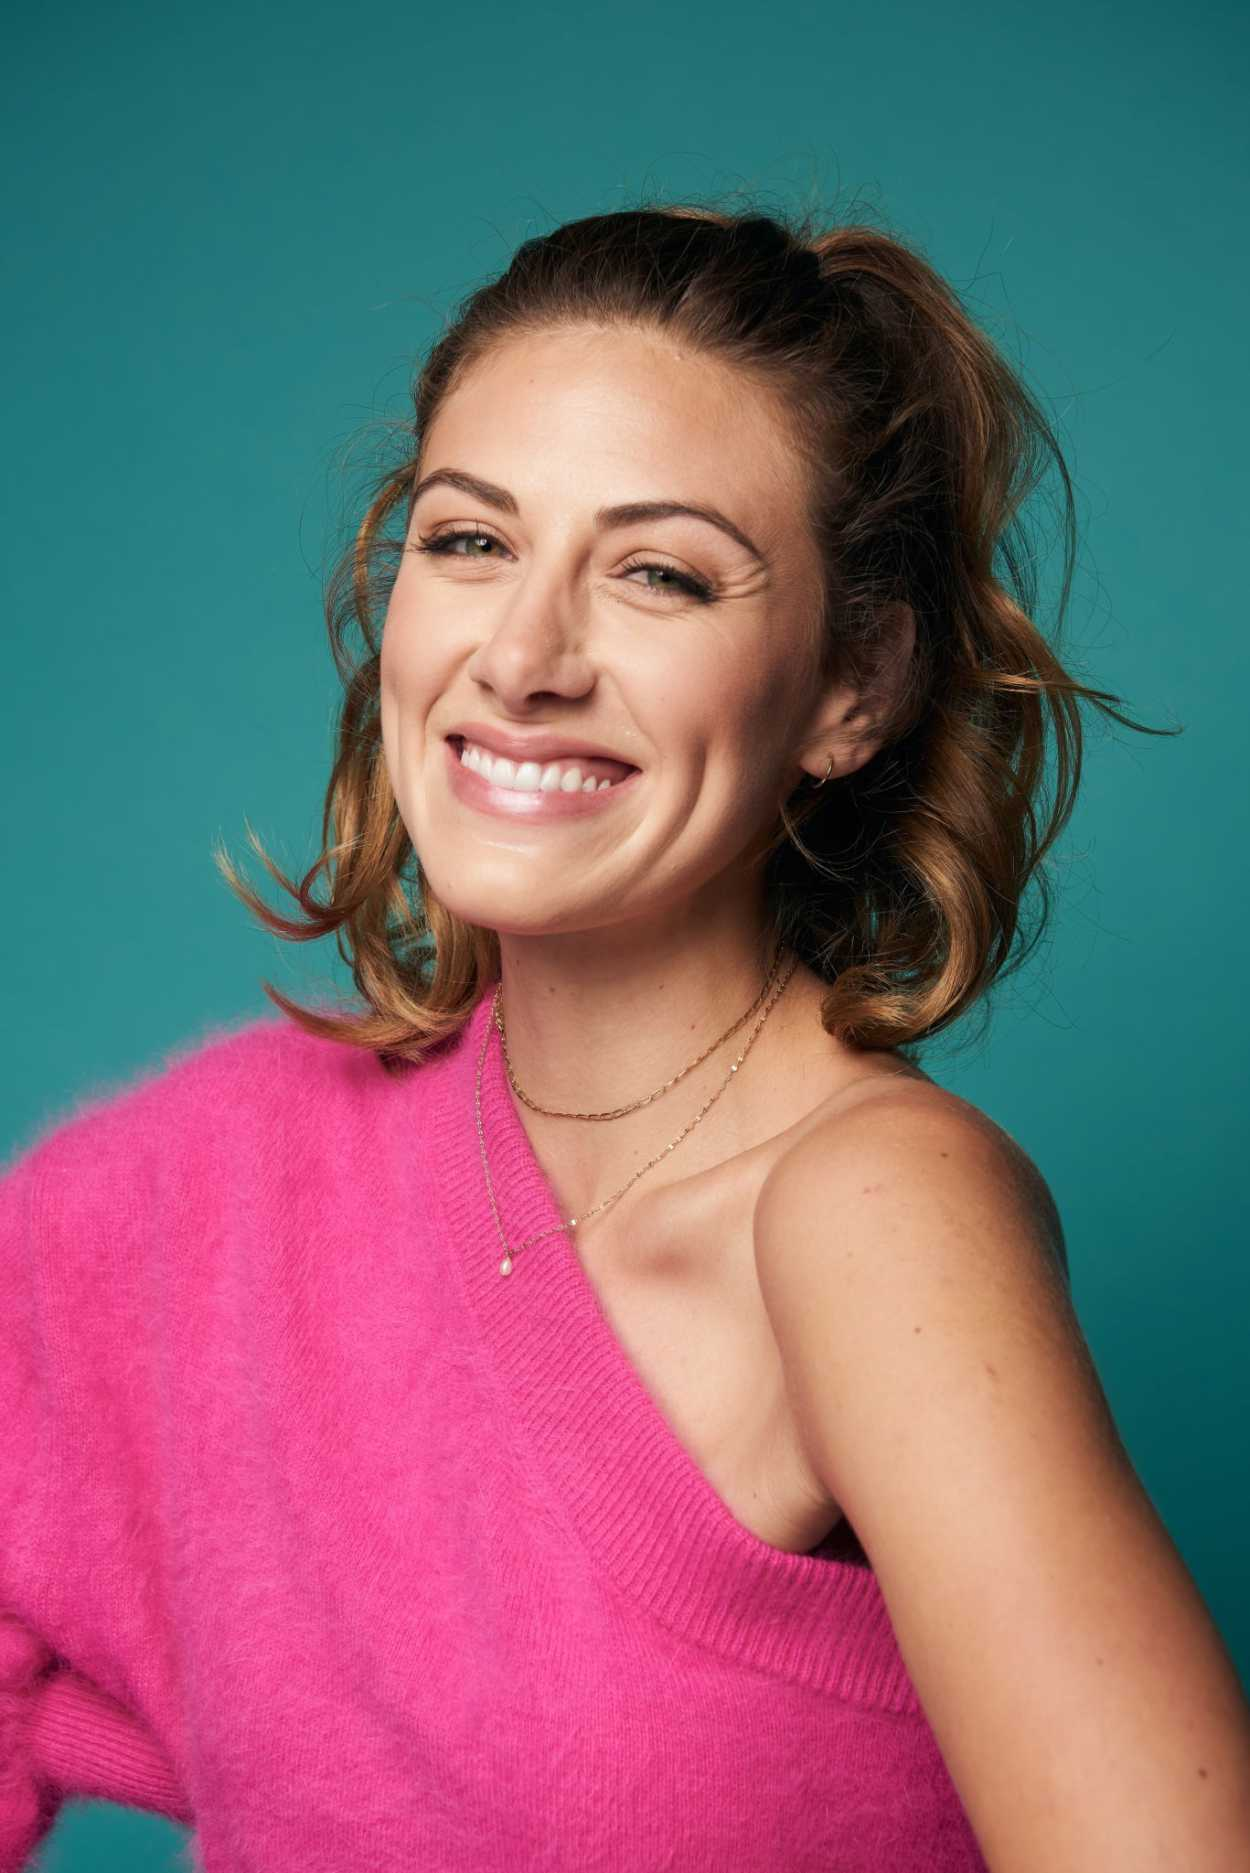 Perry Mattfeld in a Pink Sweater Portraits During 2019